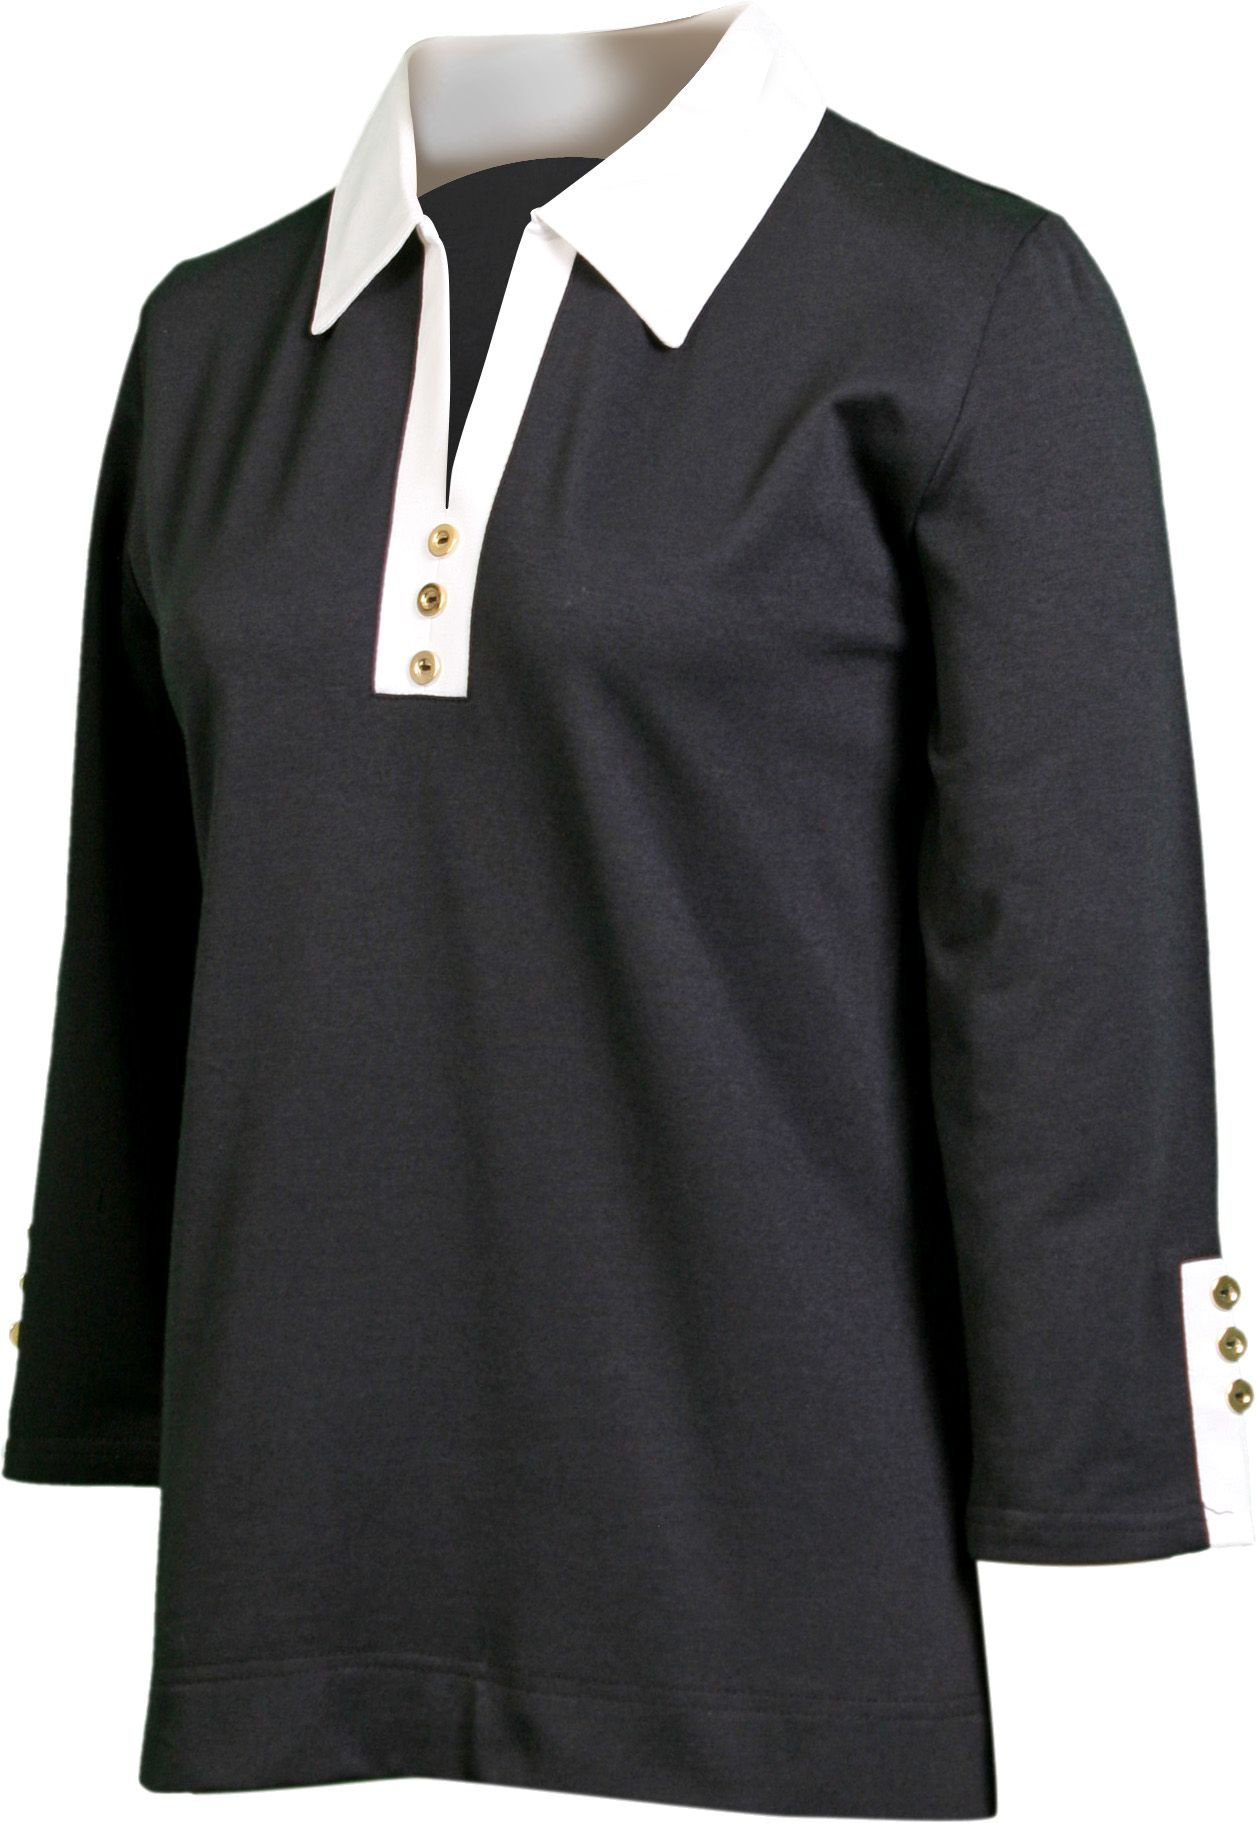 Sport Haley Women's 3/4 Sleeve Polo with Contrast Trim